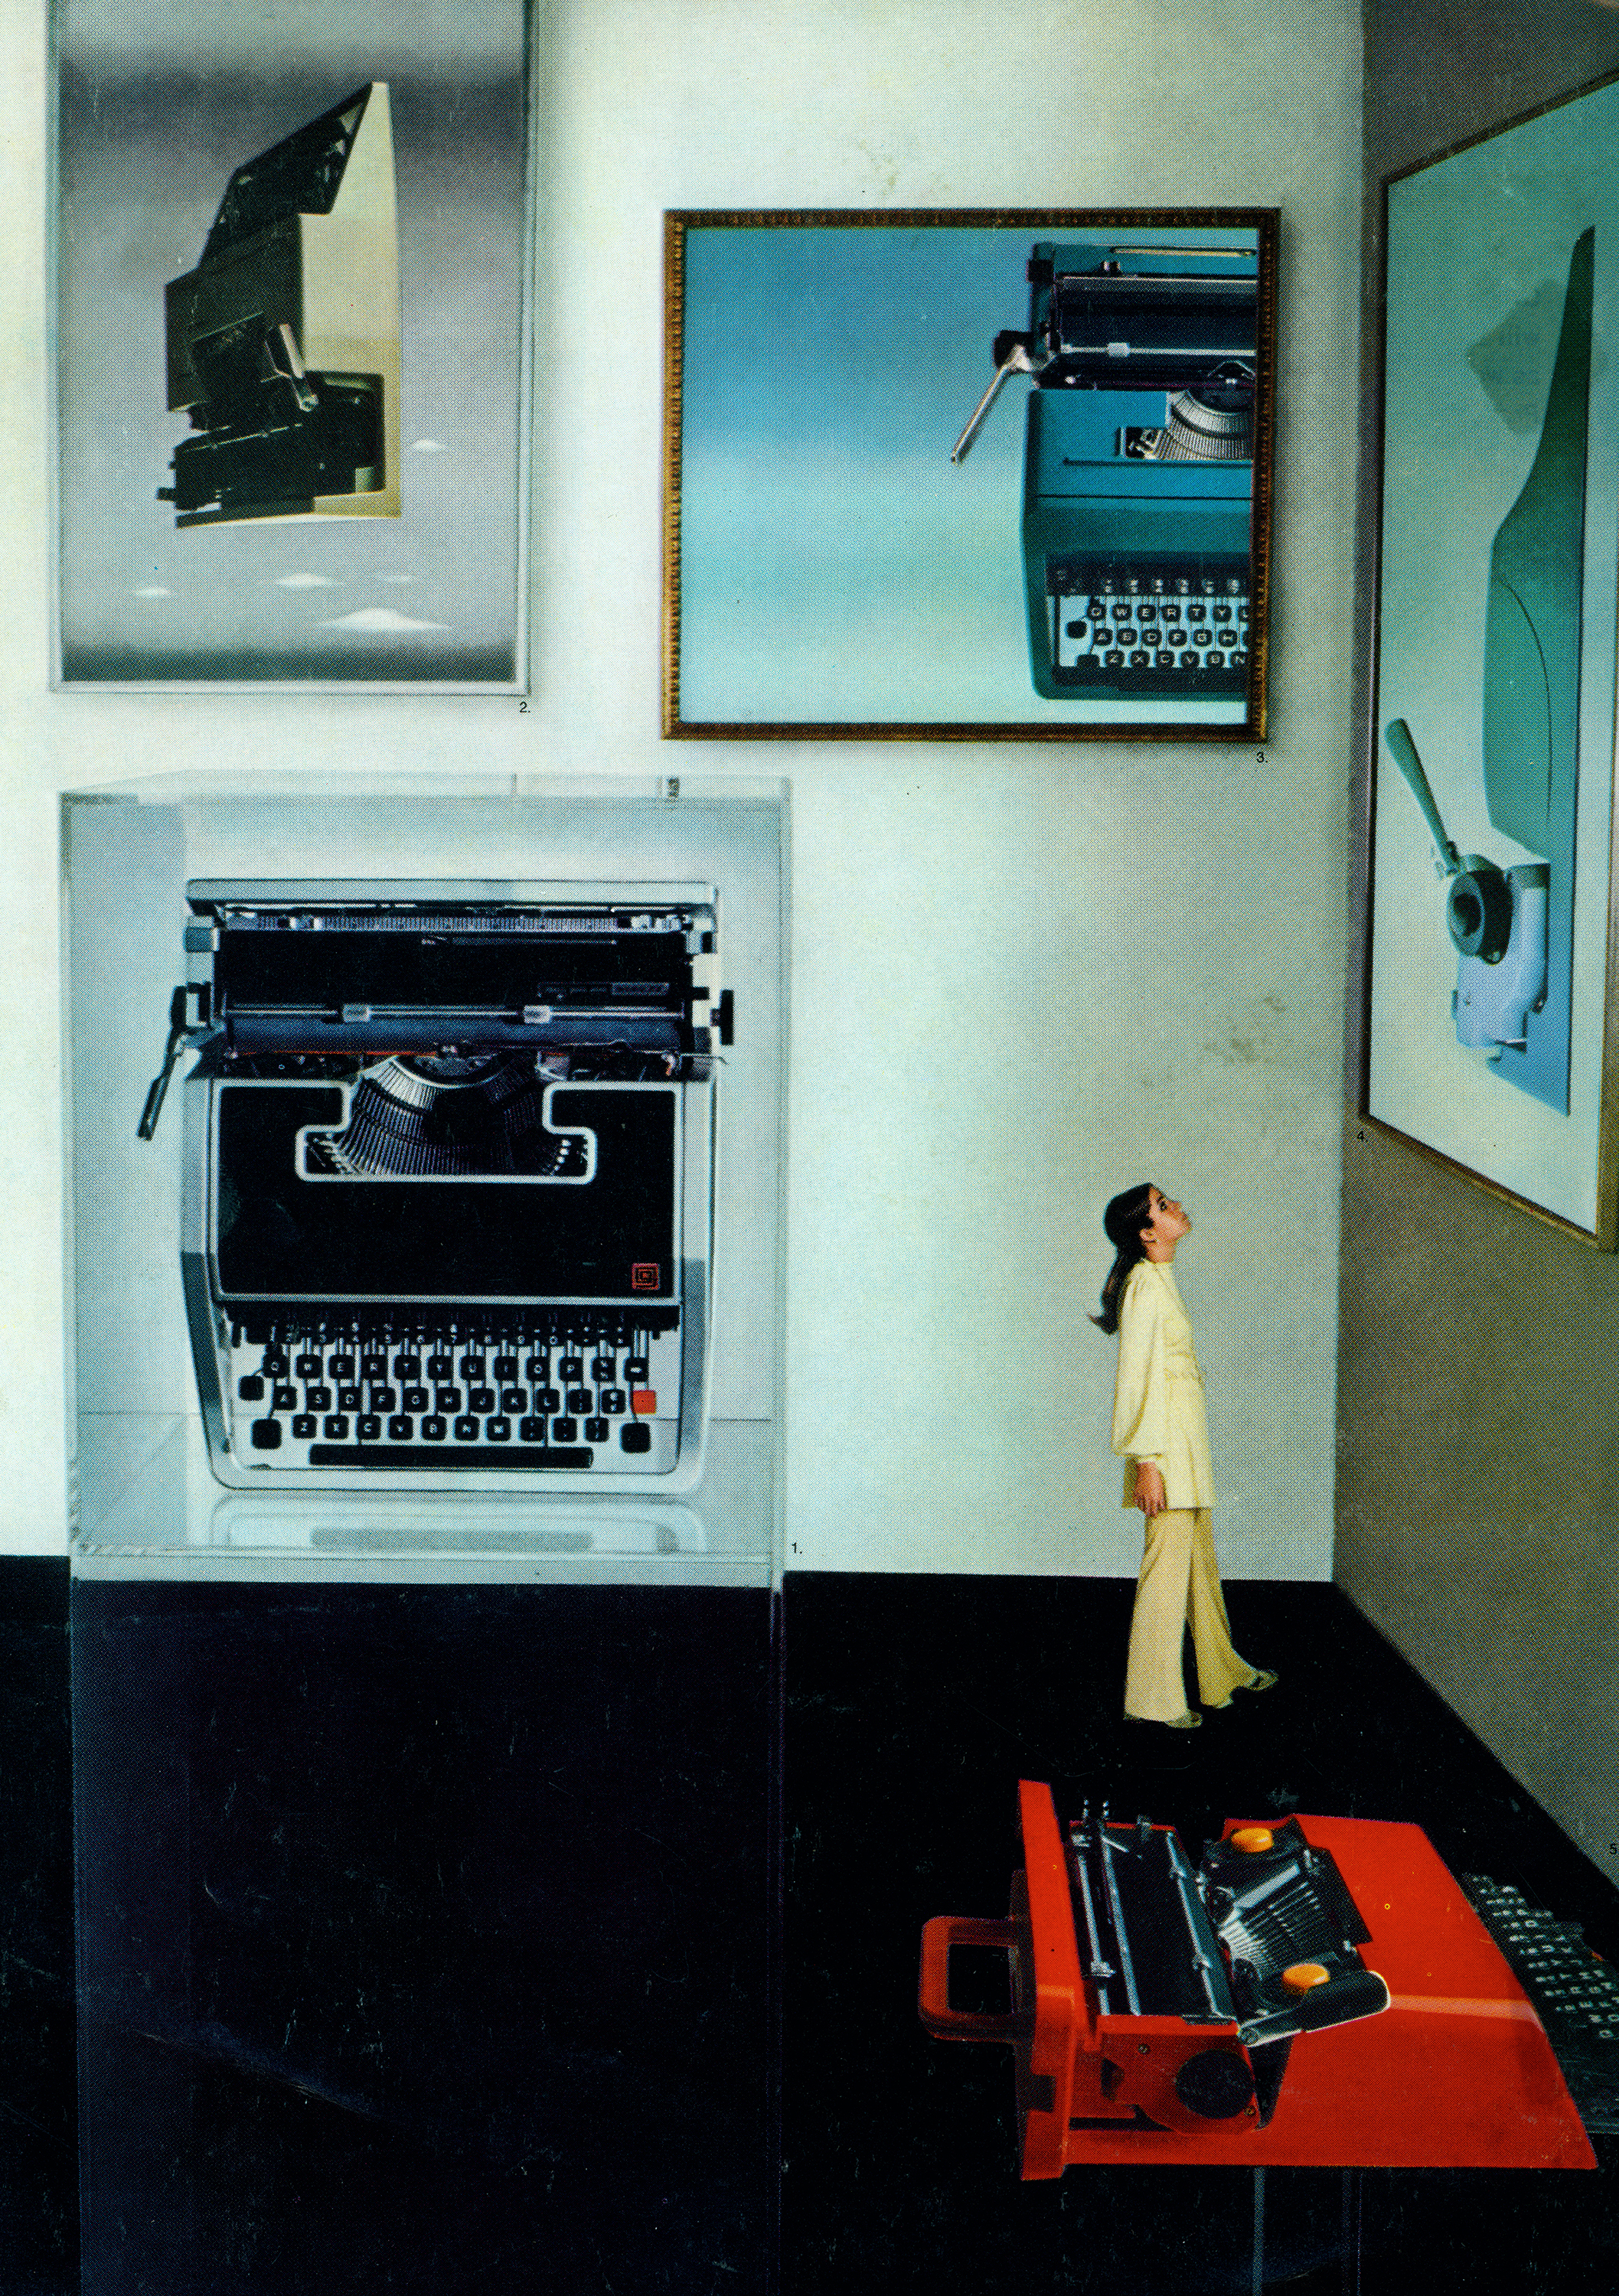 Color photo of a woman looking up at a gallery show; the art is all large photographs of typewriters.